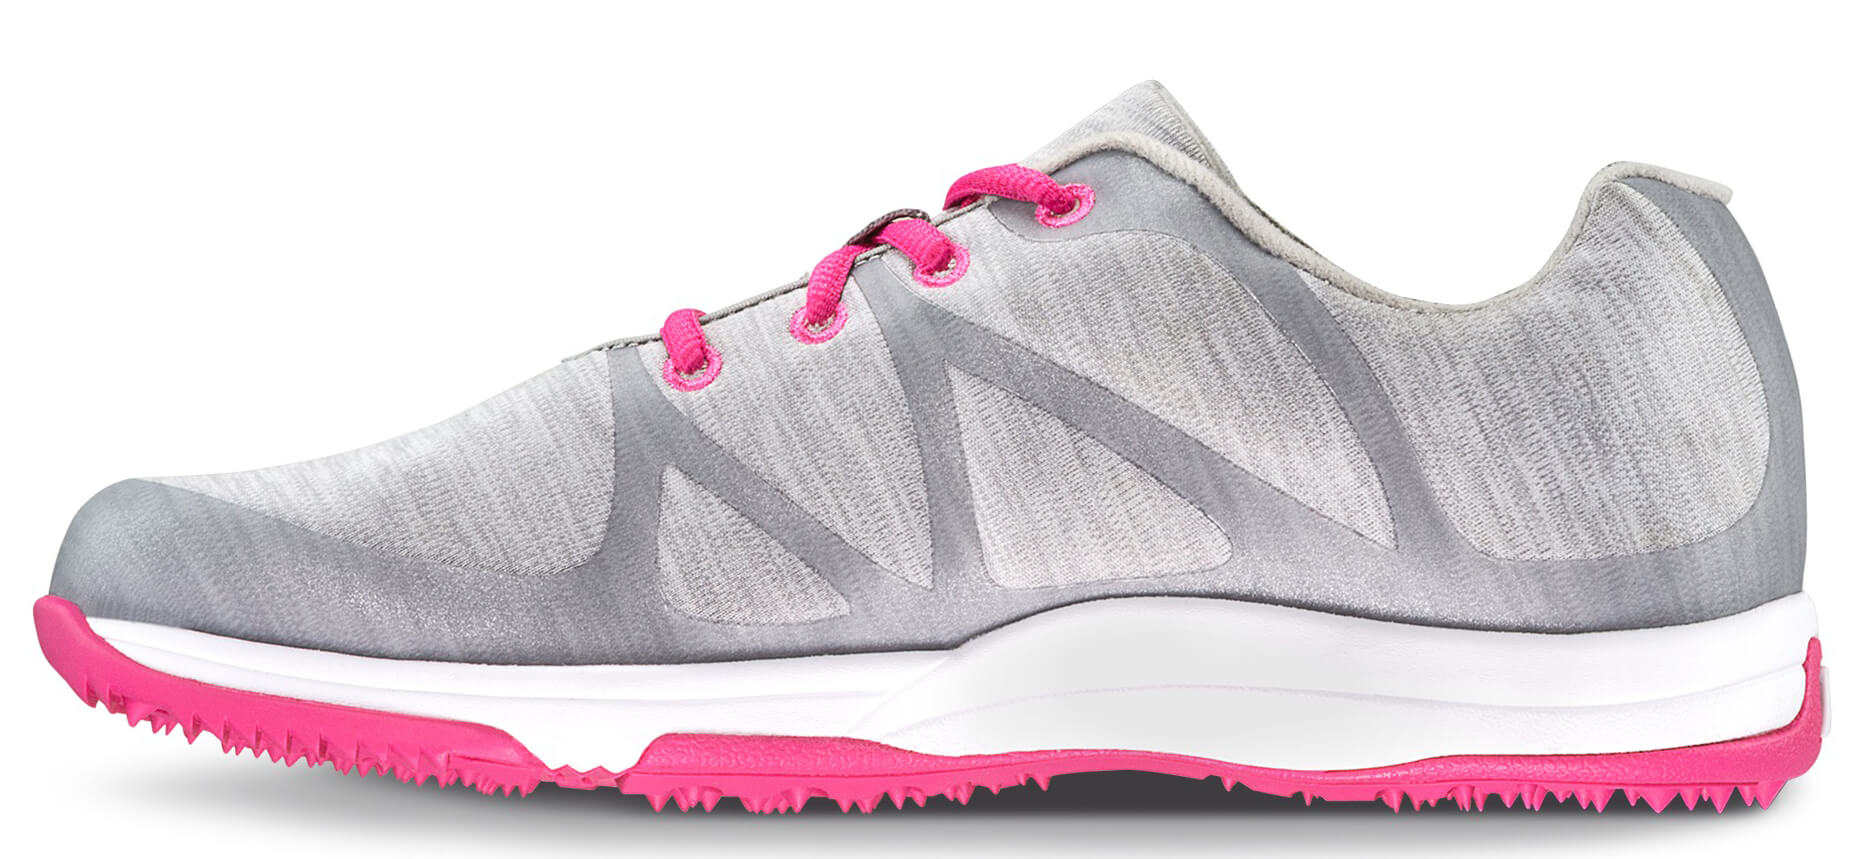 FootJoy-Women-039-s-Leisure-Golf-Shoes-Spikeless-Ladies-New-Choose-Color-amp-Size thumbnail 5